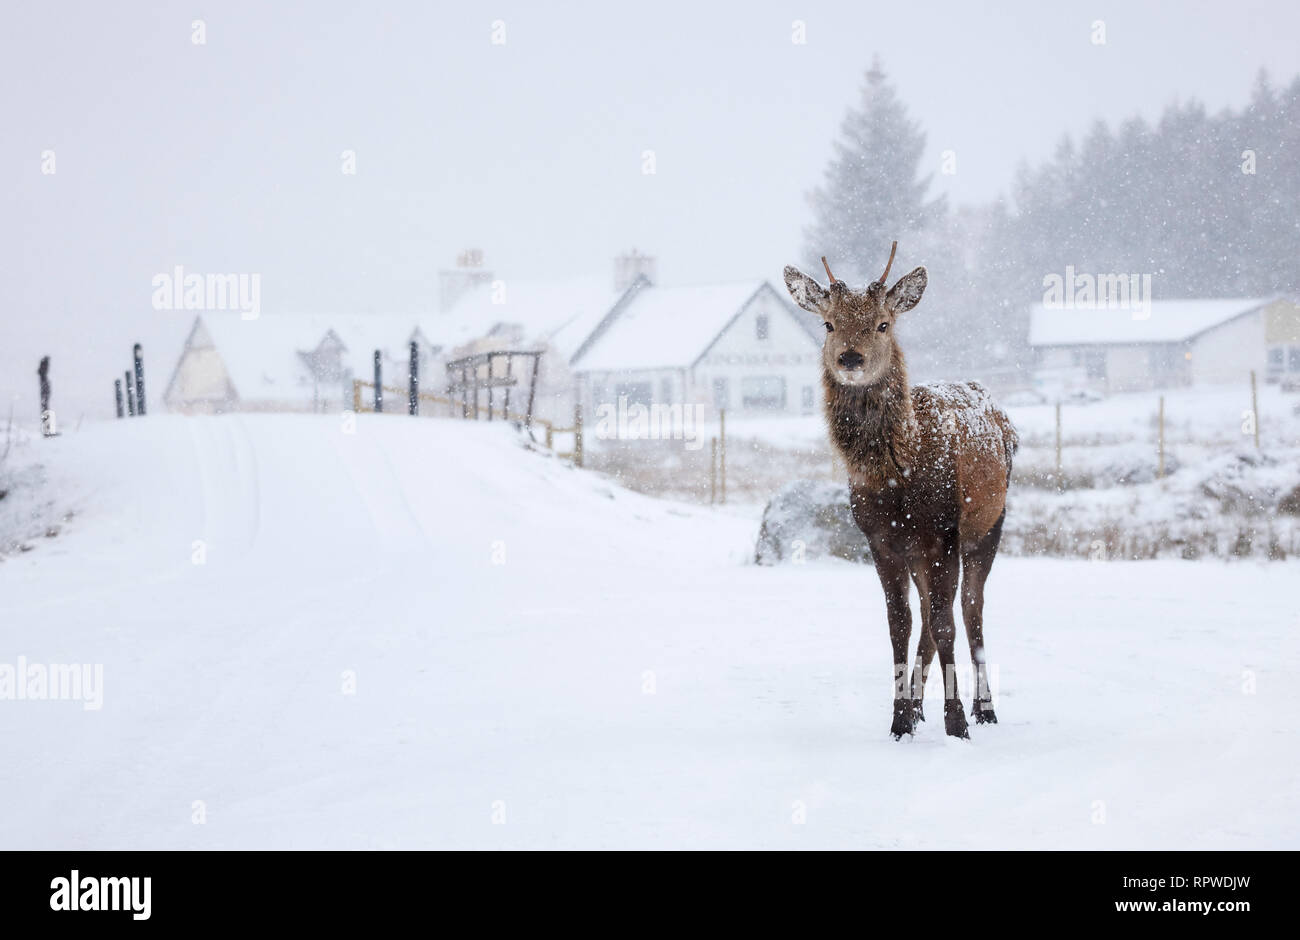 Red Deer standing proud in the Snowy highlands of Scotland - Stock Image